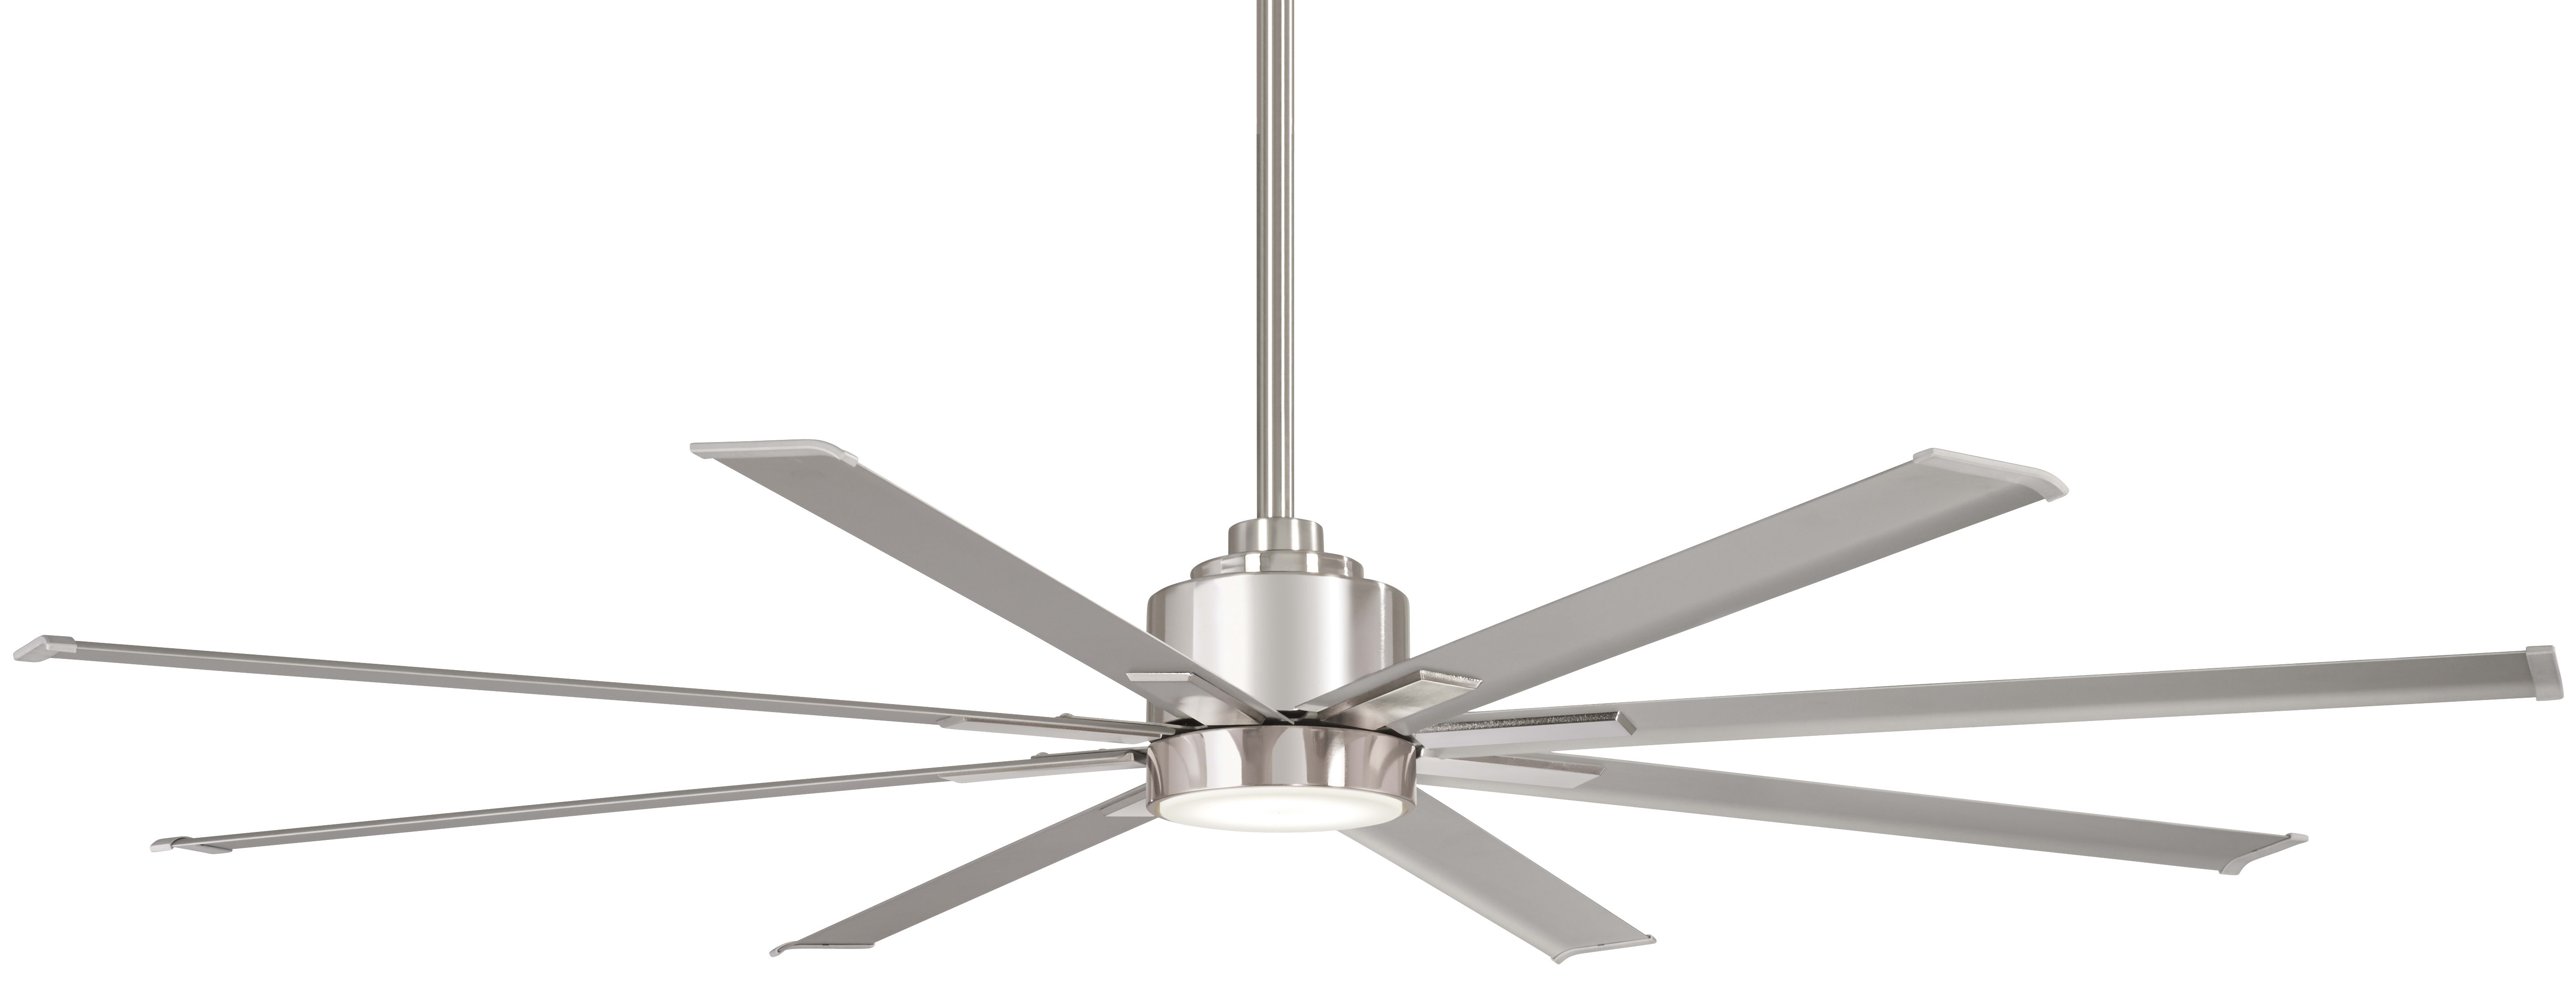 casablanca model pewter ceiling wisp in paddle fans fan